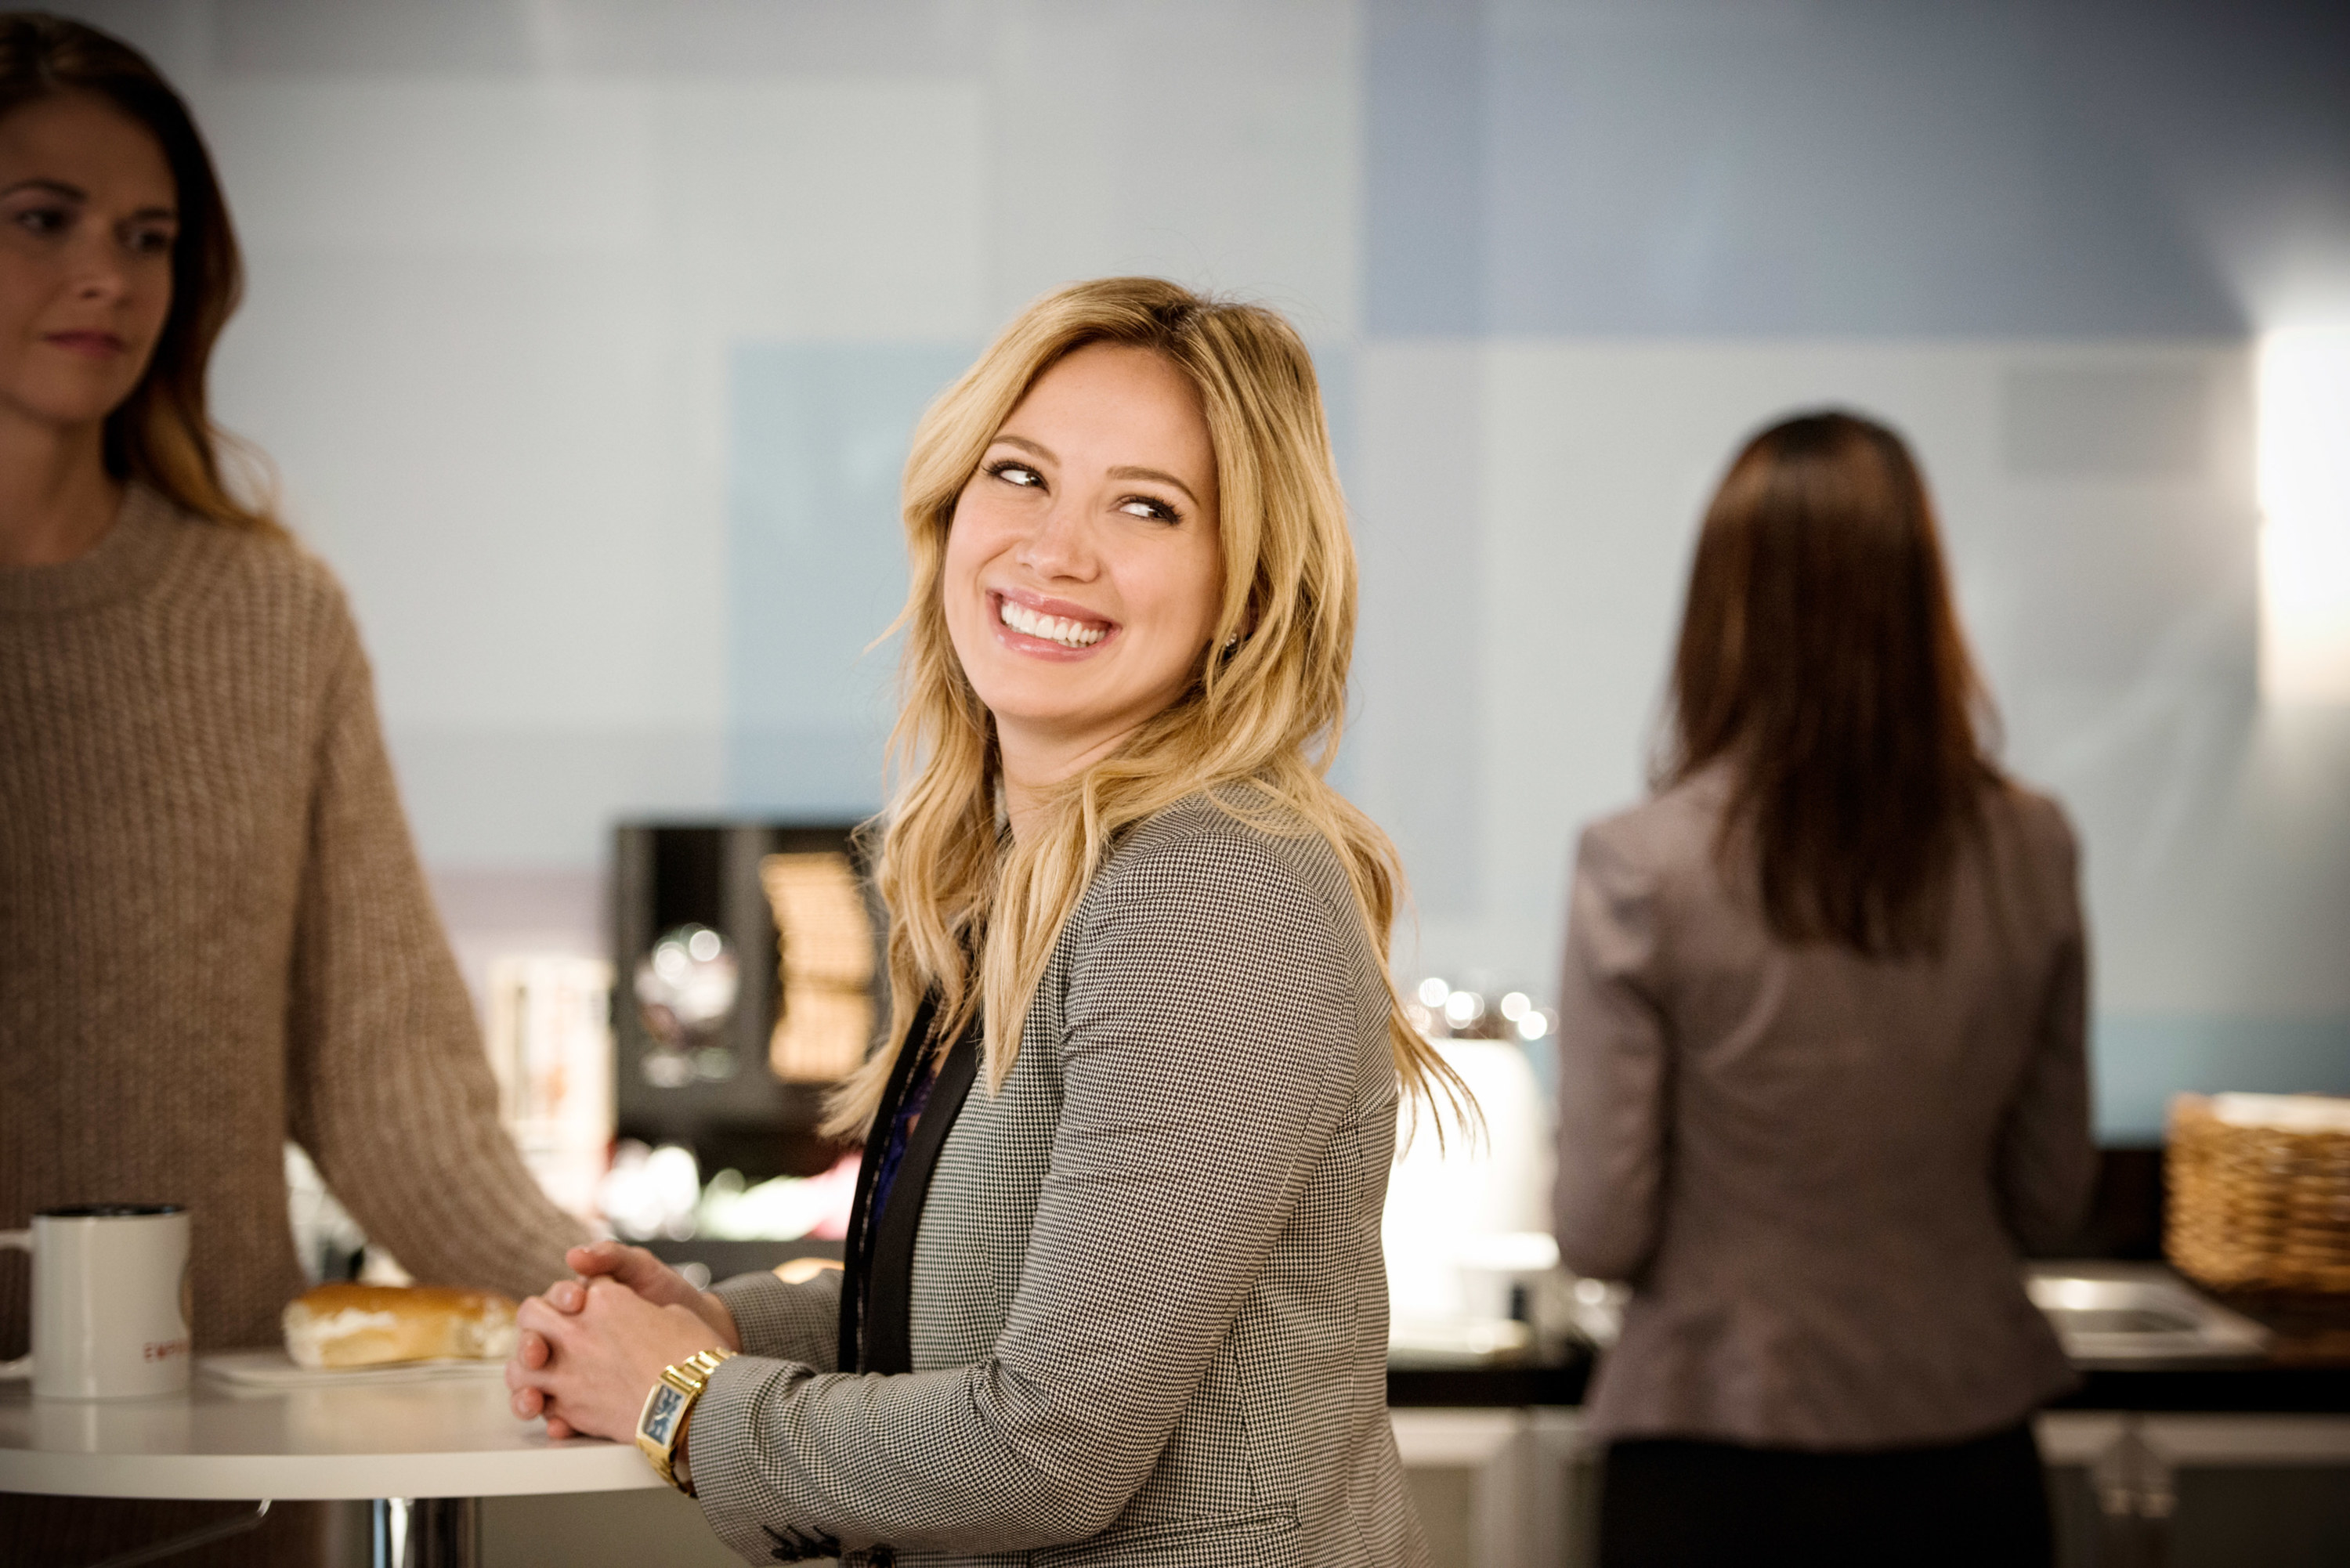 Hilary sits at a countertop and smiles over her shoulder in Younger